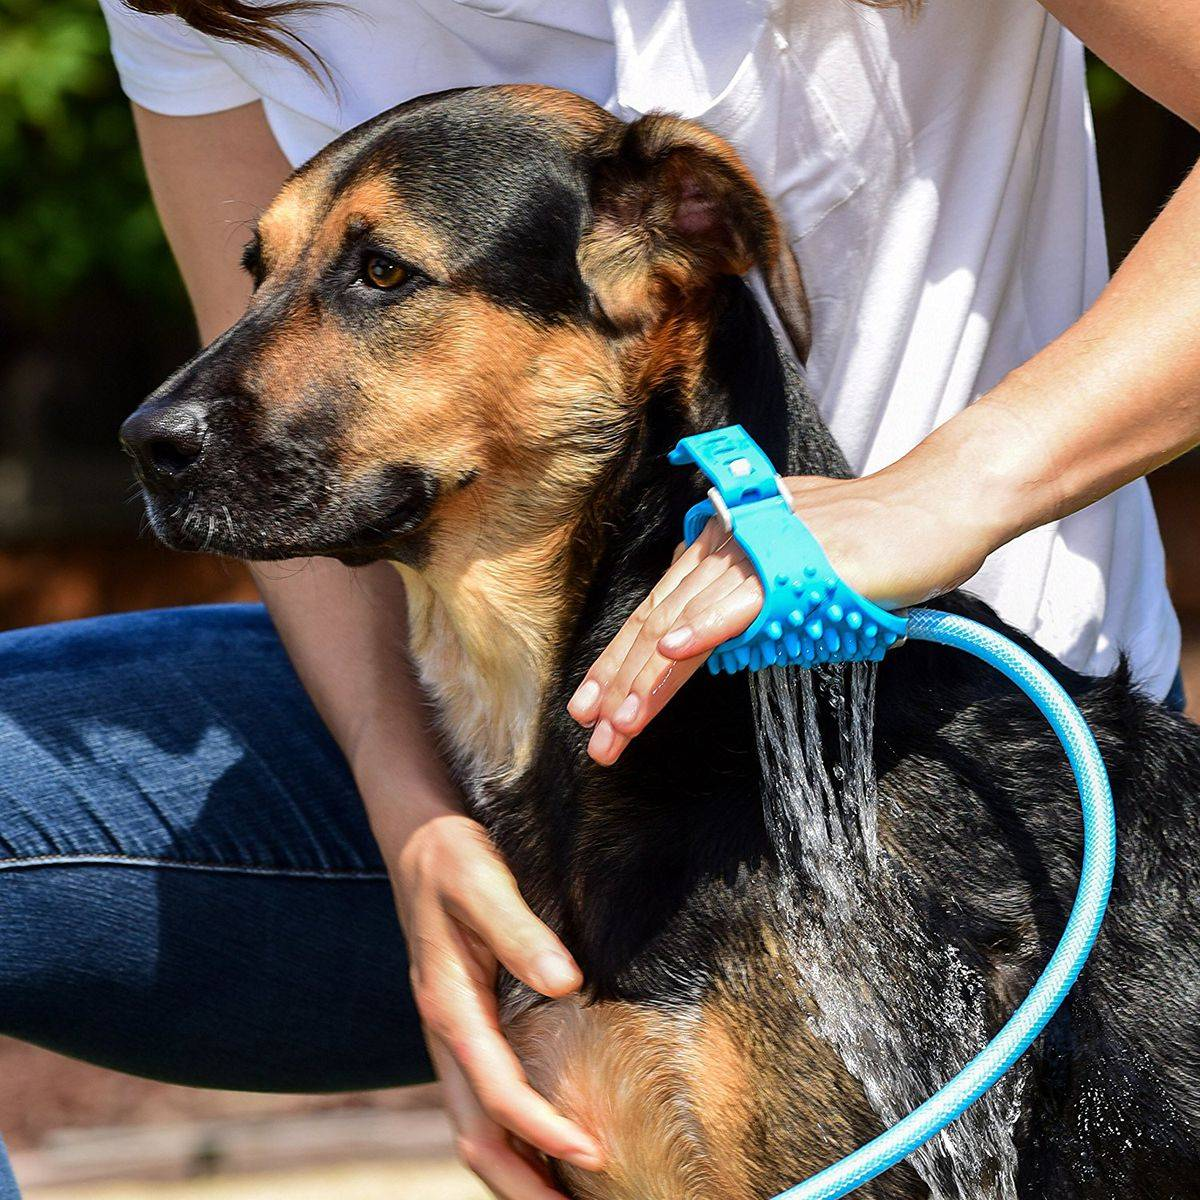 Aquapaw  - AquaPaw - 9 Life-Changing Gadgets All Pet Owners Need to Know About